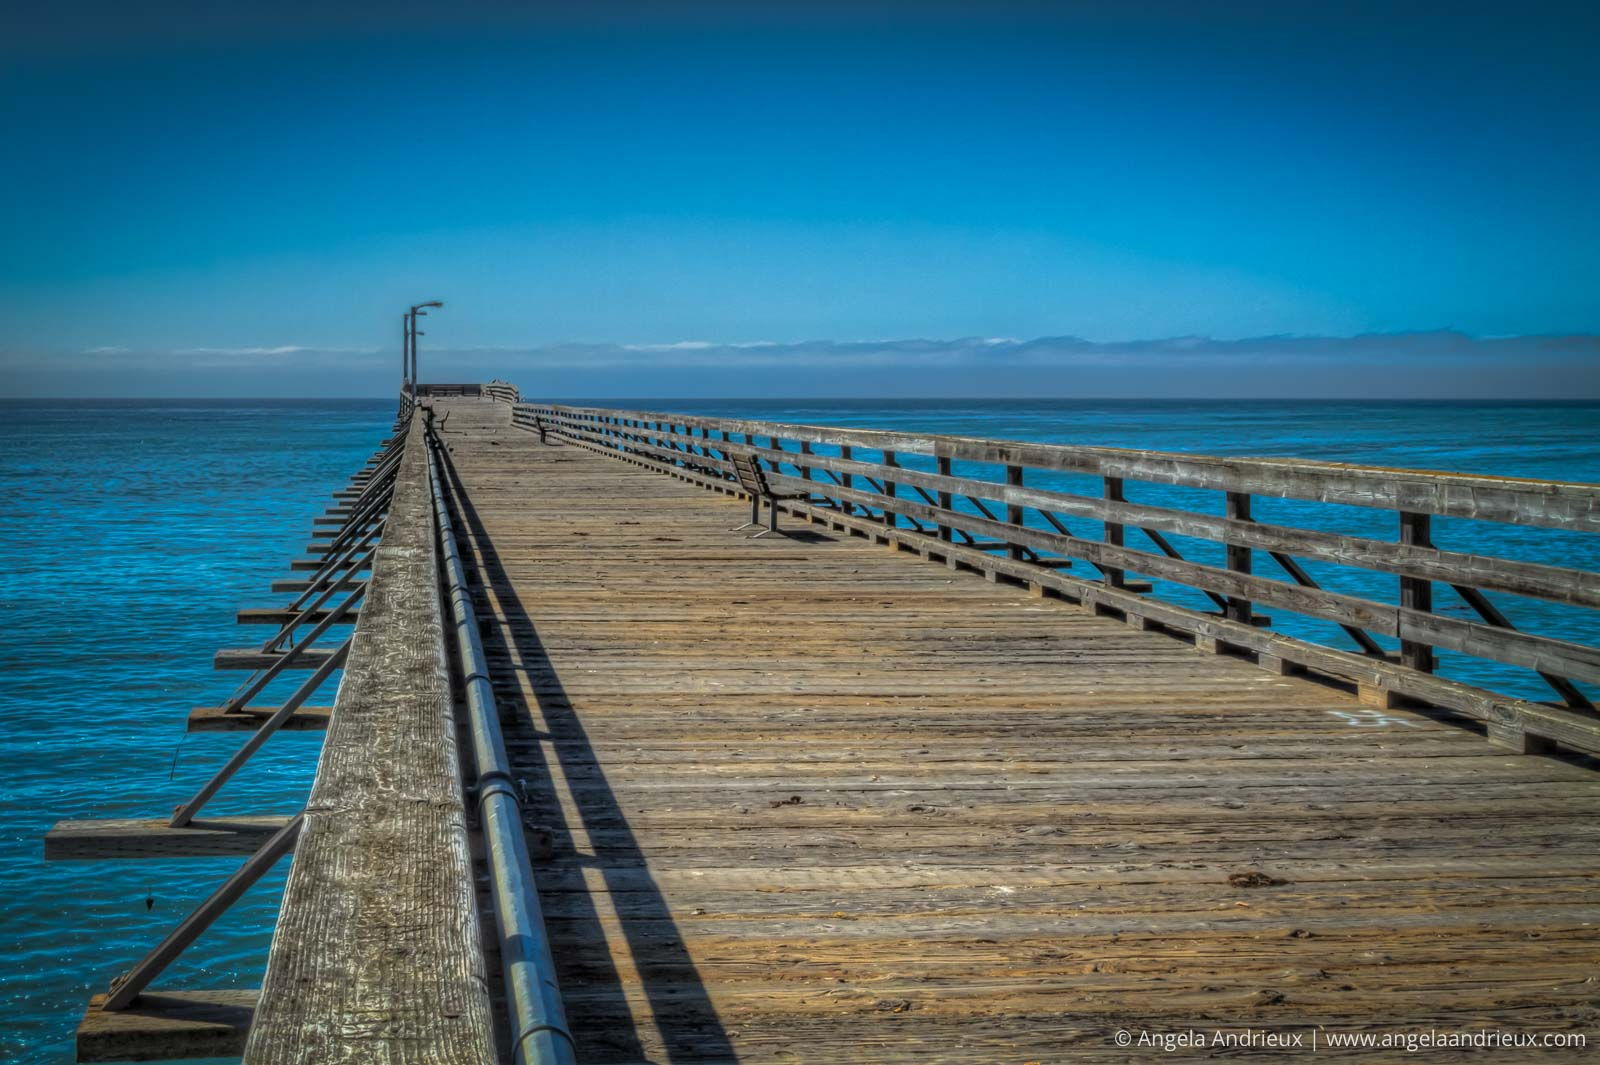 Cayucos Pier on a bright blue sunny day